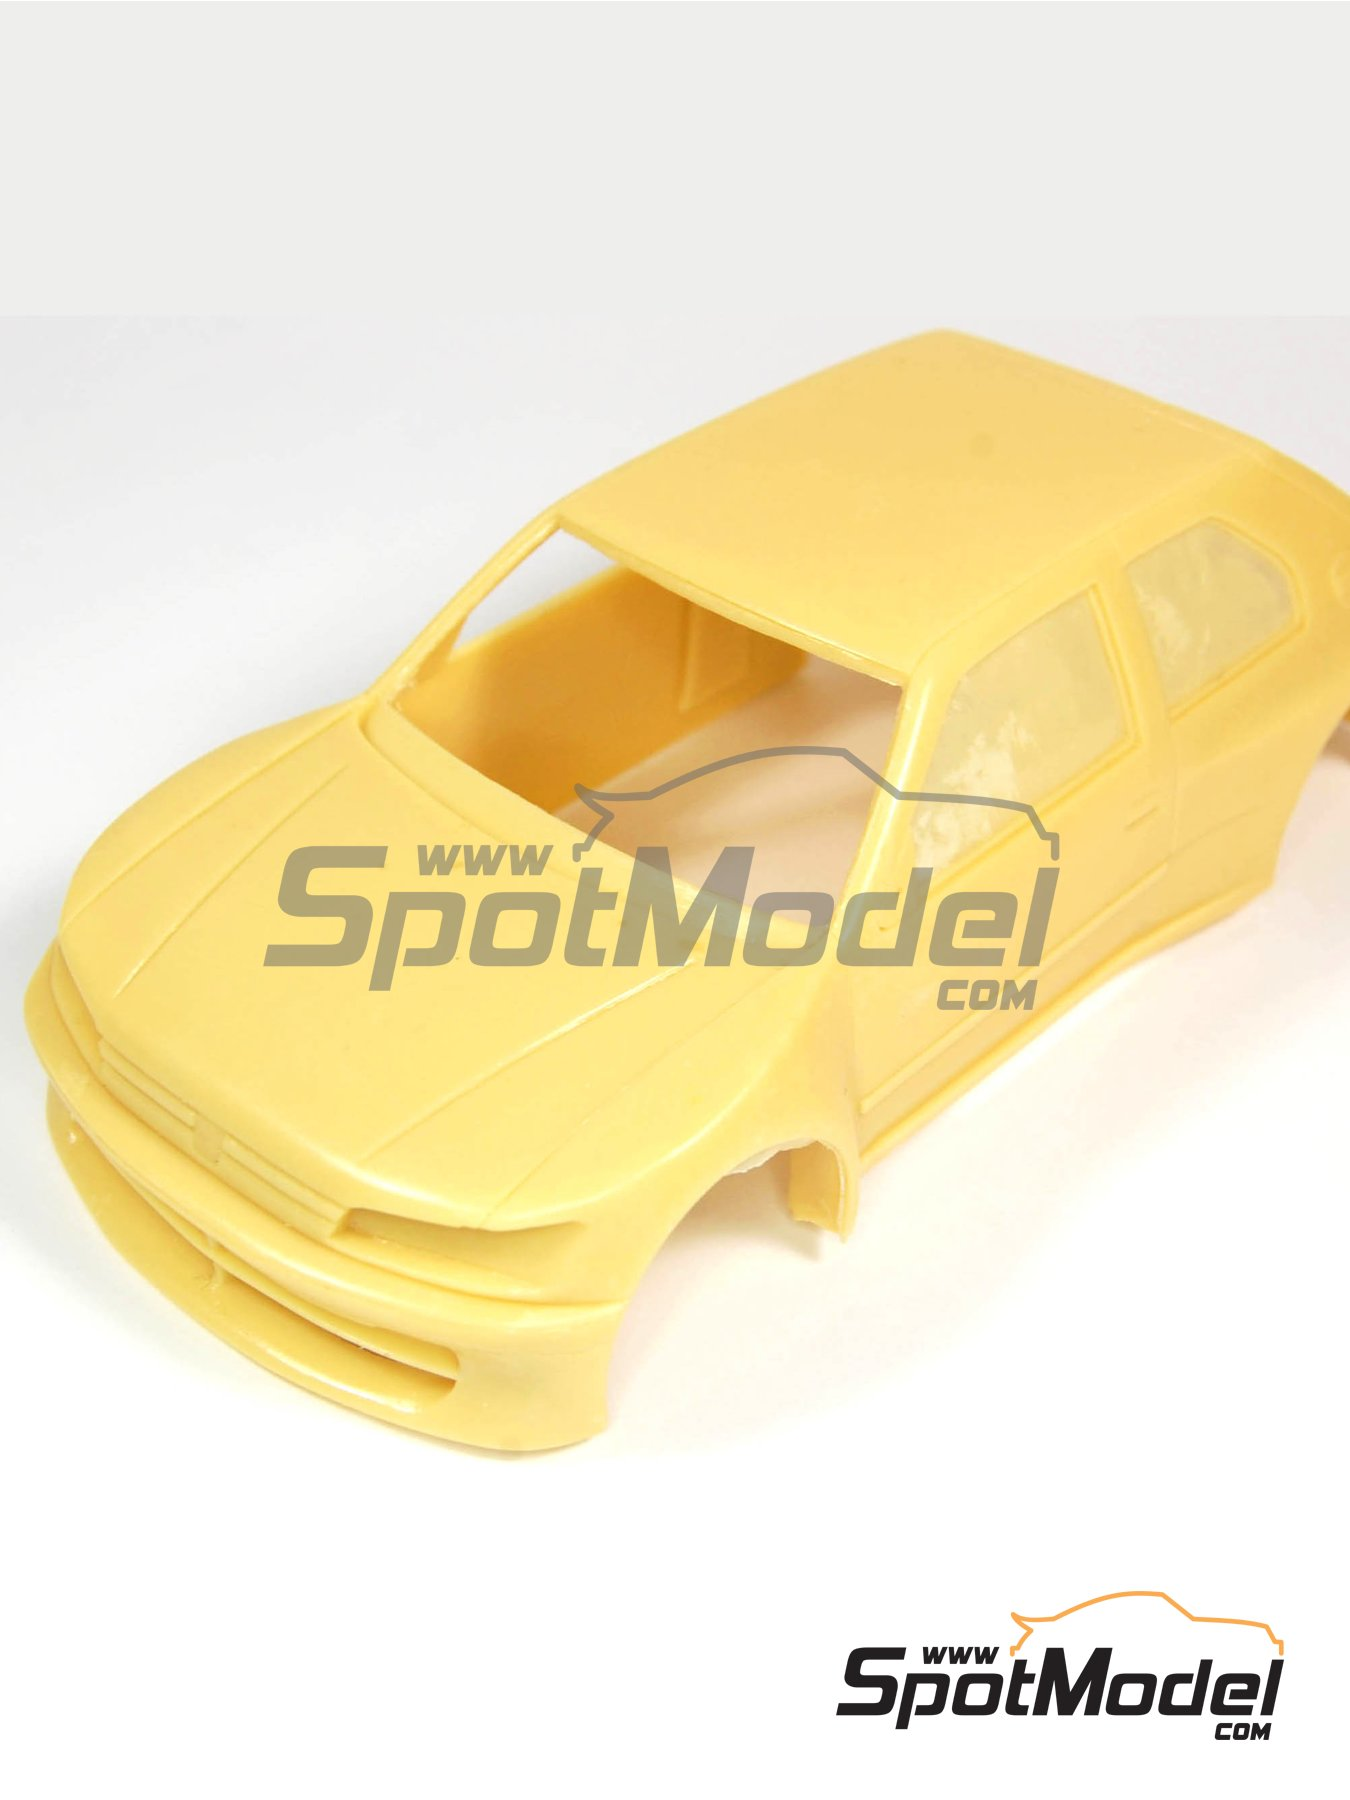 Peugeot 306 Maxi Evo 1 | Bodywork in 1/24 scale manufactured by Renaissance Models (ref. CTR2401-BODY) image